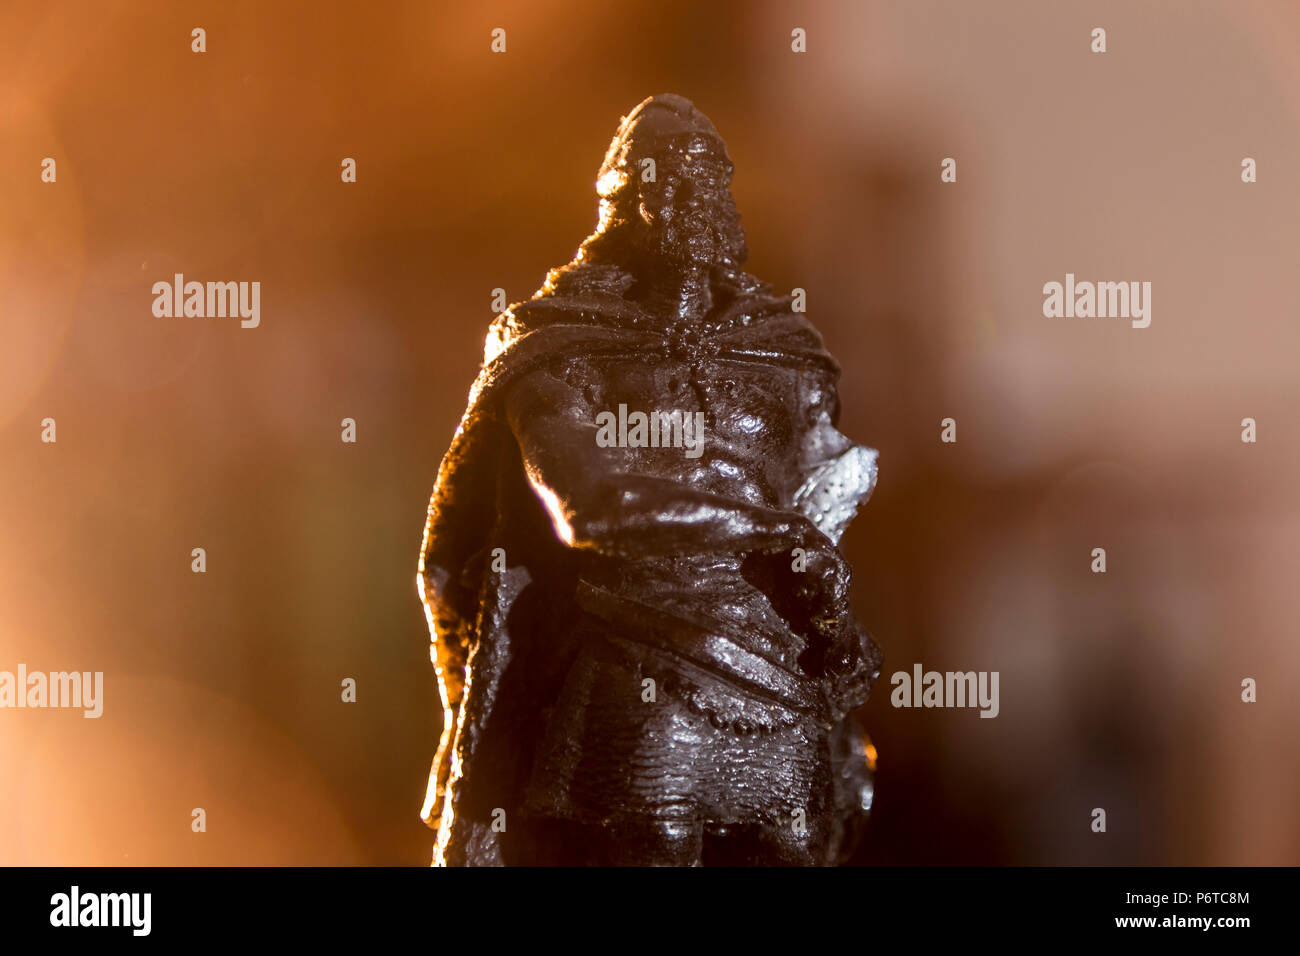 representation of Don Pelayo warrior Asturian initiator reconquest in Spain - Stock Image